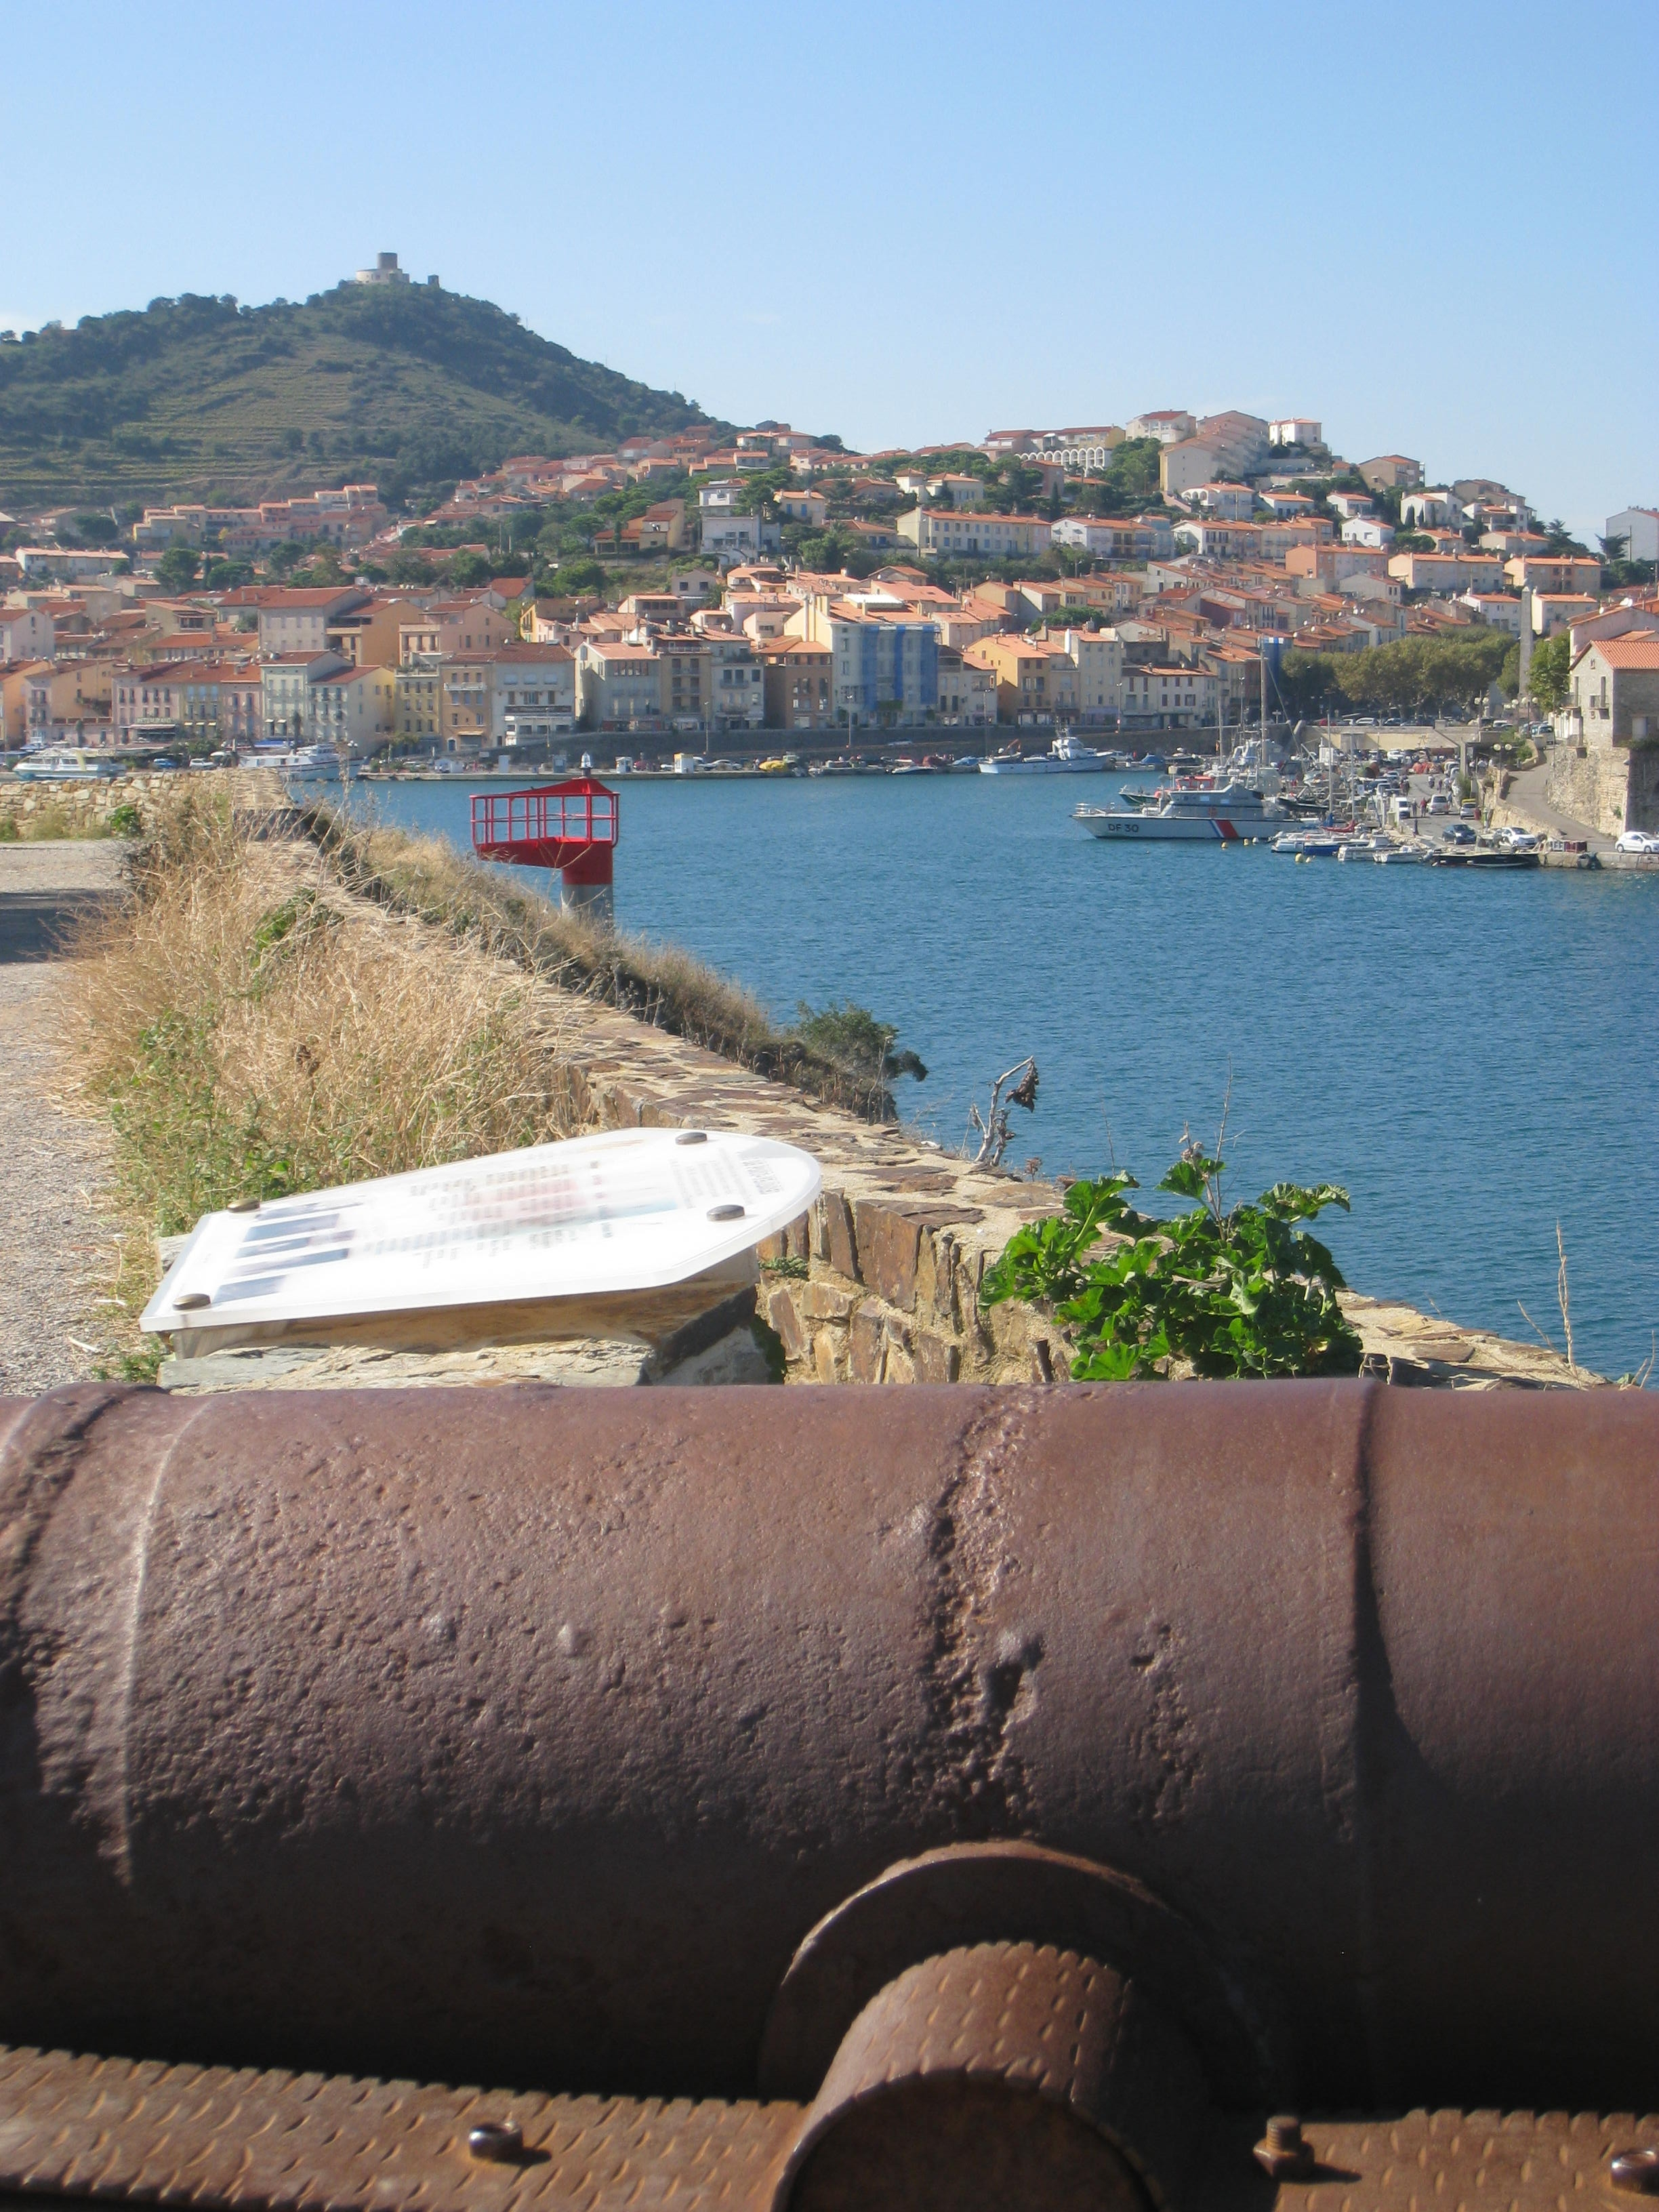 View of Port Vendres